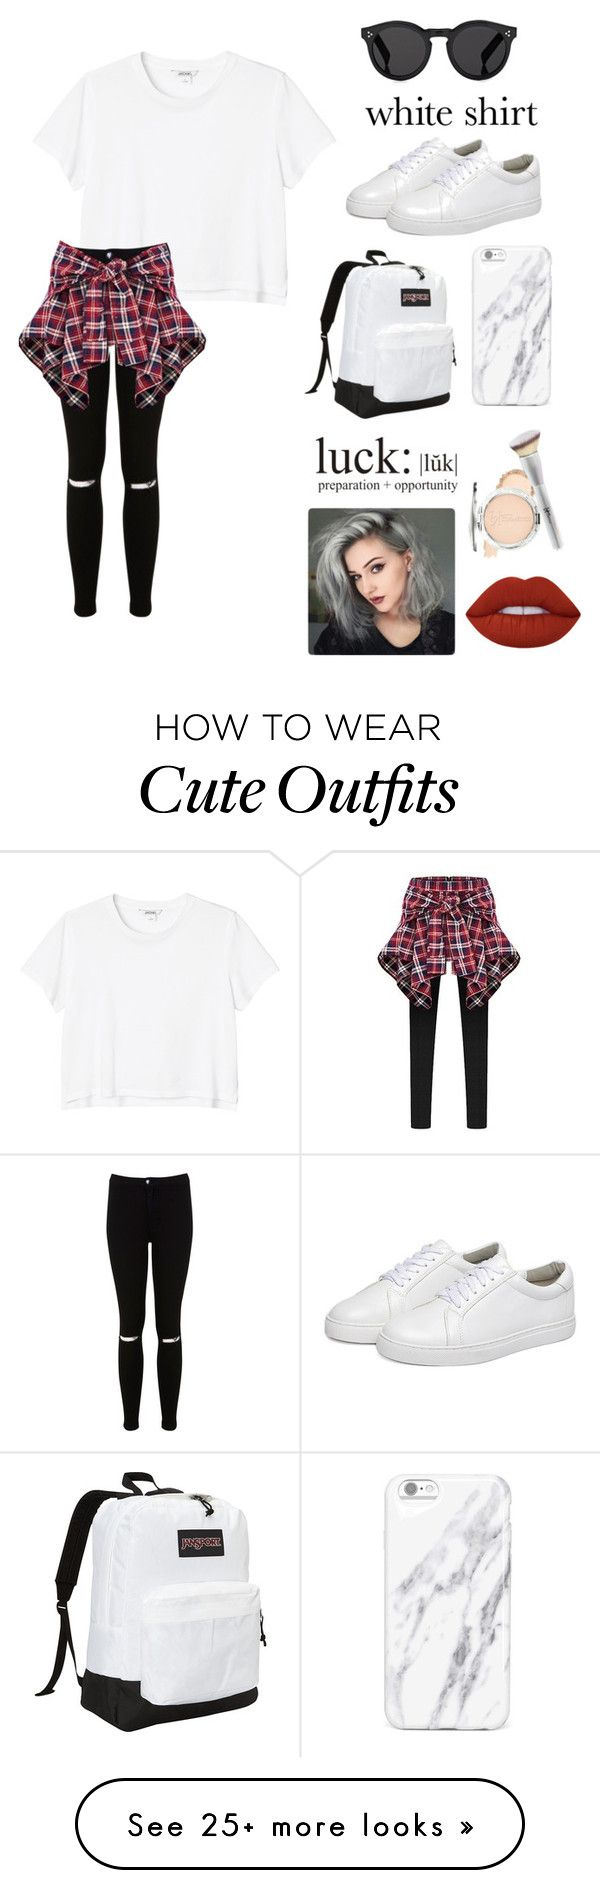 """""""Cute Outfit"""" by ellenmadeintheam on Polyvore featuring Monki, Miss Selfridge, It Cosmetics, JanSport, Illesteva, Lime Crime and WardrobeStaples"""